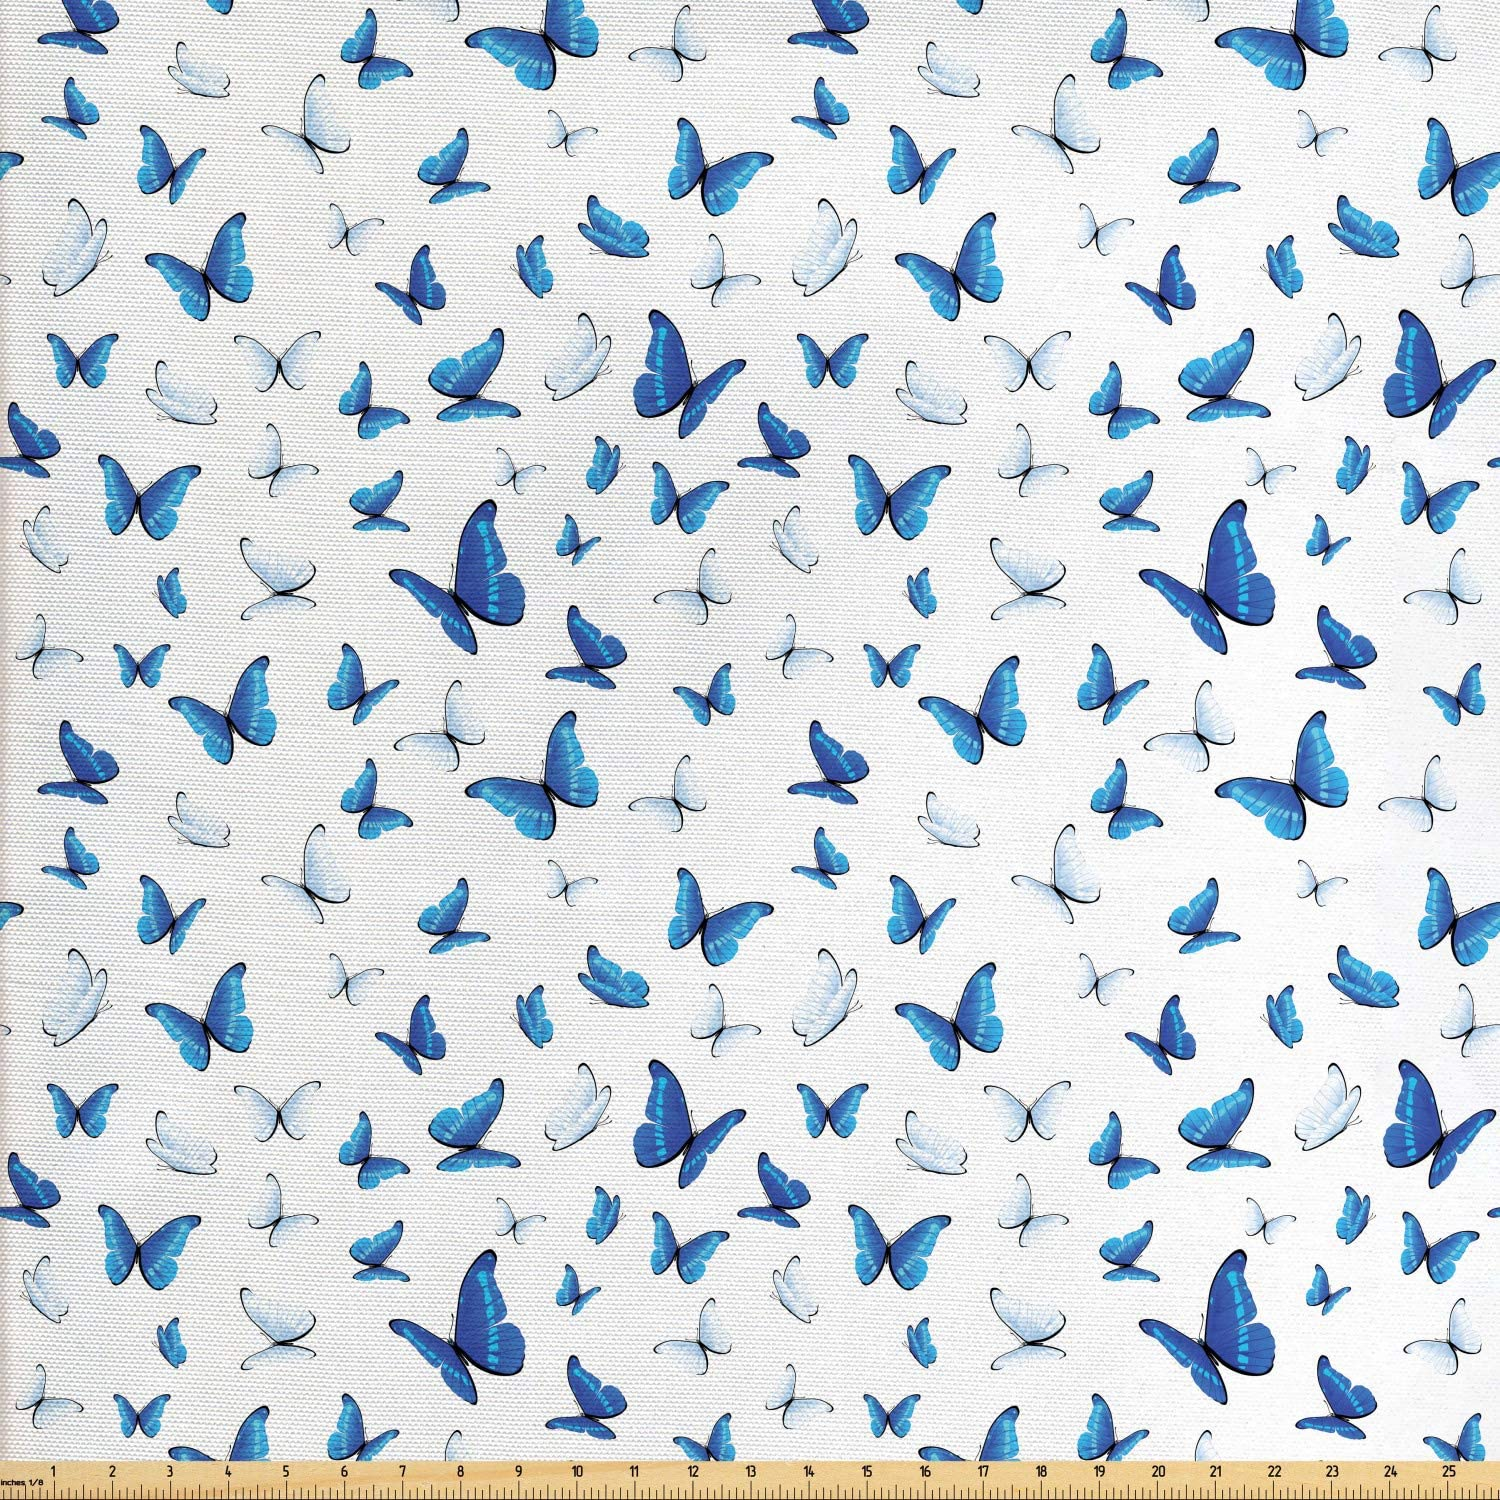 Ambesonne Butterflies Fabric by The Yard, Butterflies Patterns Seasonal Jolly Rainforest Wilderness Illustration, Decorative Fabric for Upholstery and Home Accents, 3 Yards, Black White